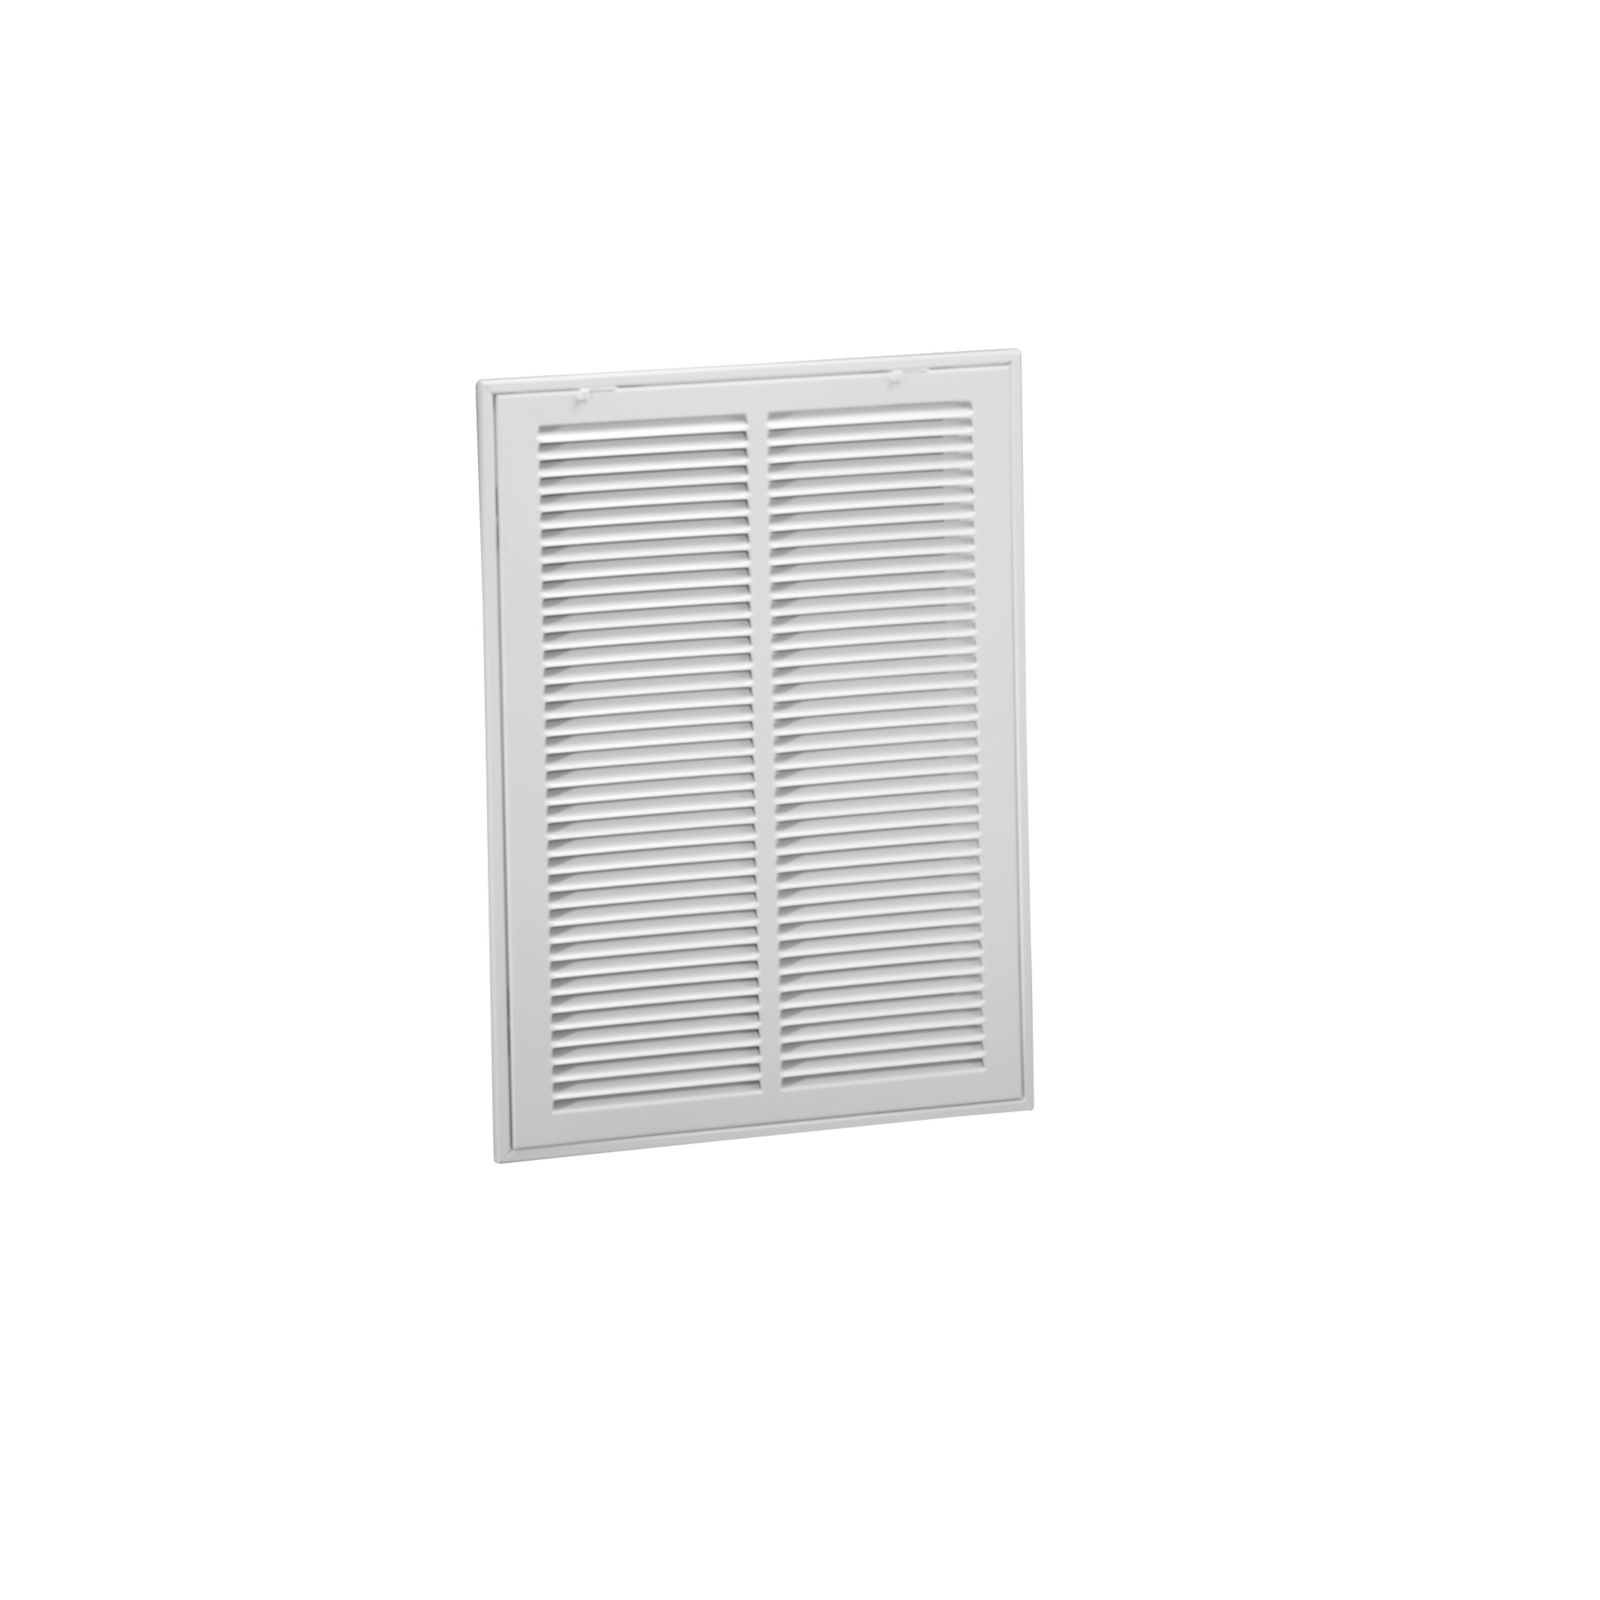 "Hart & Cooley 043506 - #673 Steel Return Air Filter Grille, White Finish, 14"" X 24"""